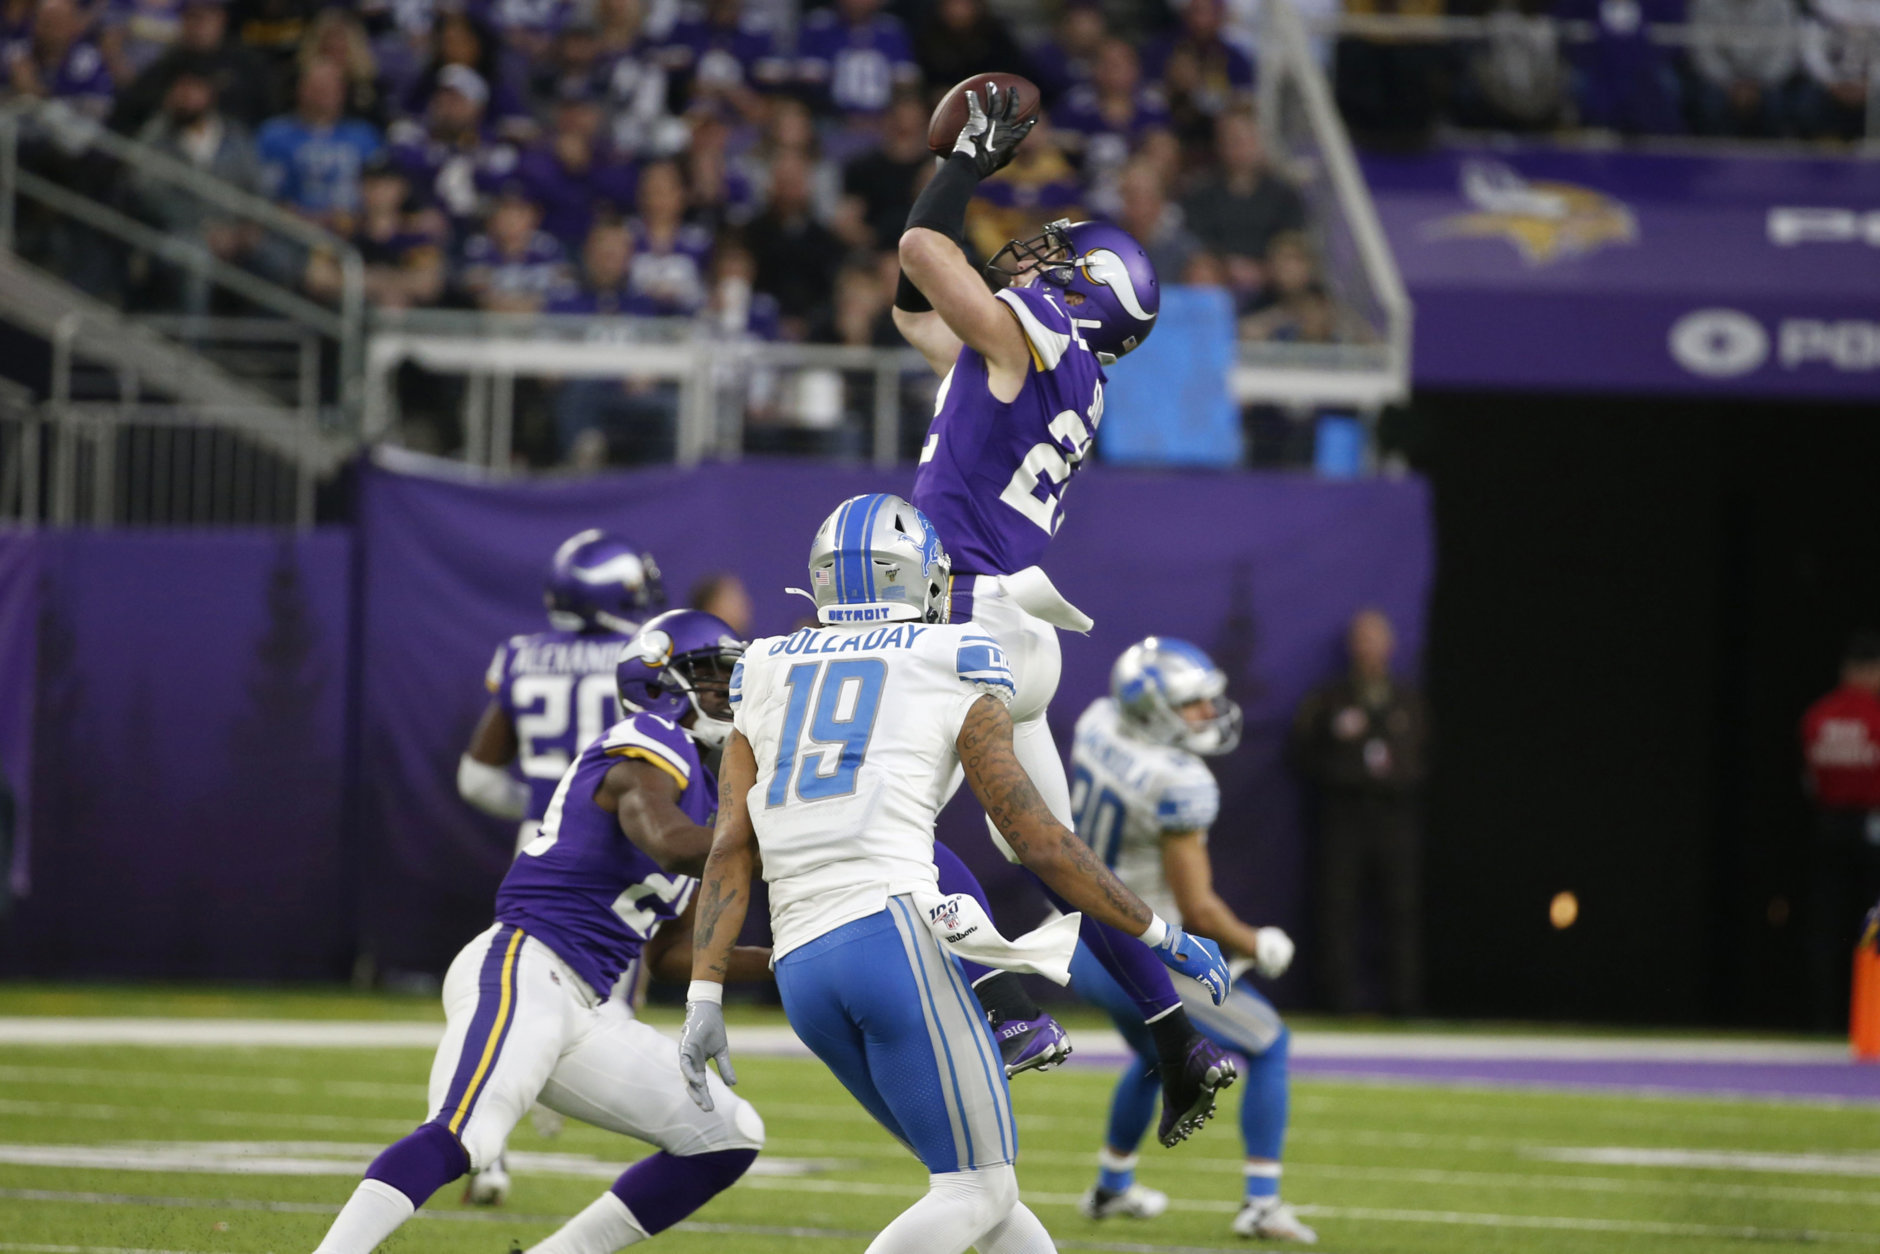 <p><b><i>Lions 7</i></b><br /> <b><i>Vikings 20</i></b></p> <p>Minnesota just missed grabbing its first shutout in two years but continue to squat on the final NFL wild card spot. With the Rams returning to form &#8212; and only a game out of the playoff picture &#8212; the Vikings can&#8217;t have a letdown in L.A. next week.</p>